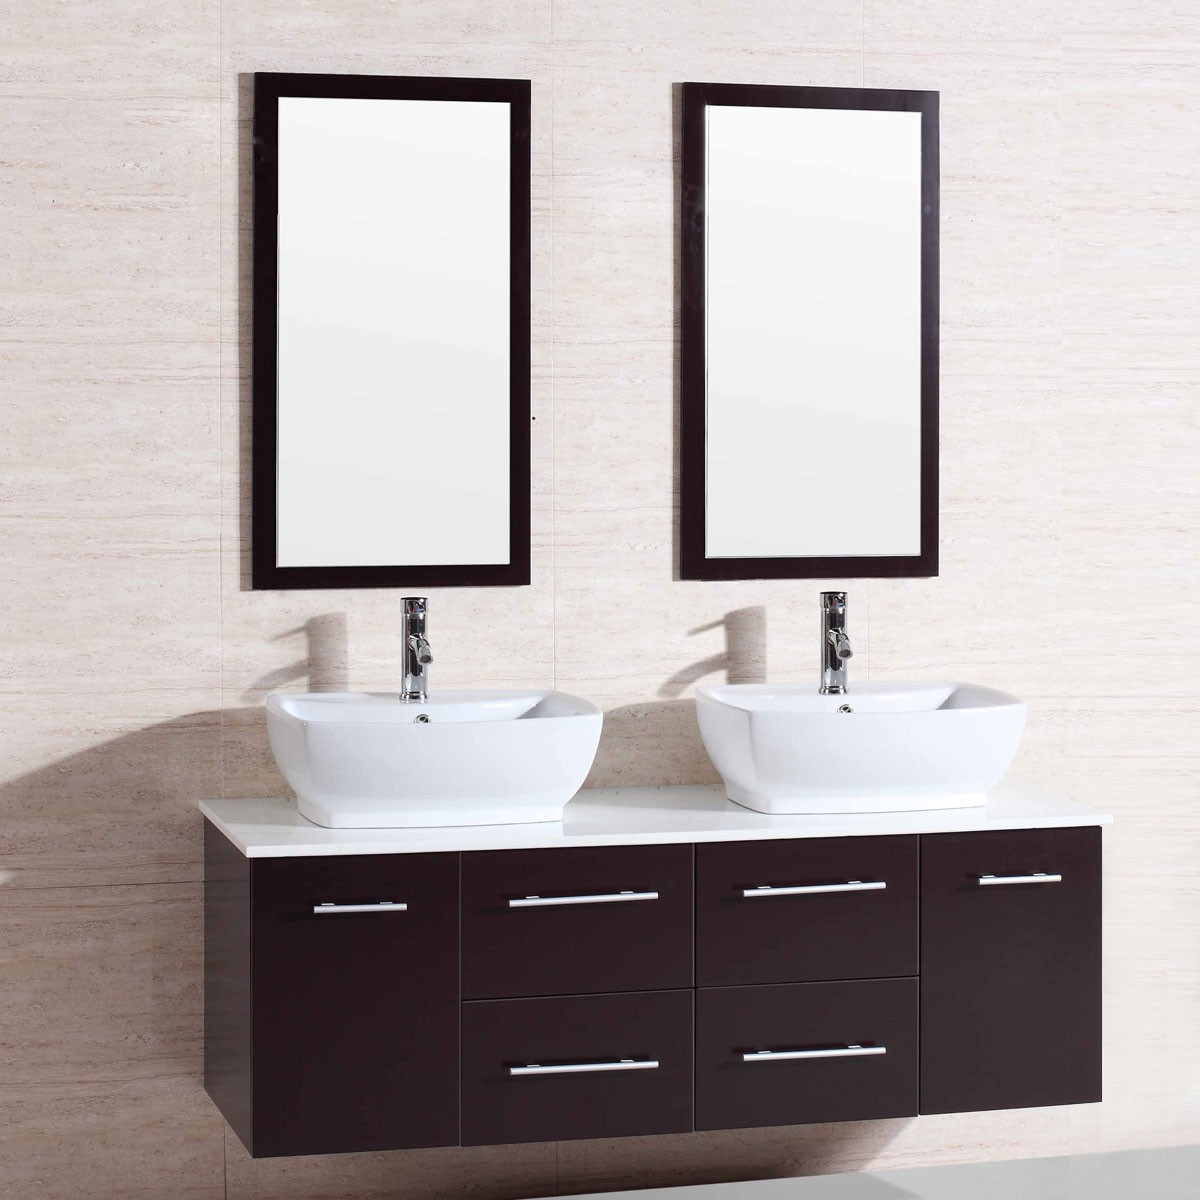 60 In. Wall Mount Bathroom Vanity Set with Double Sinks and Mirrors ...